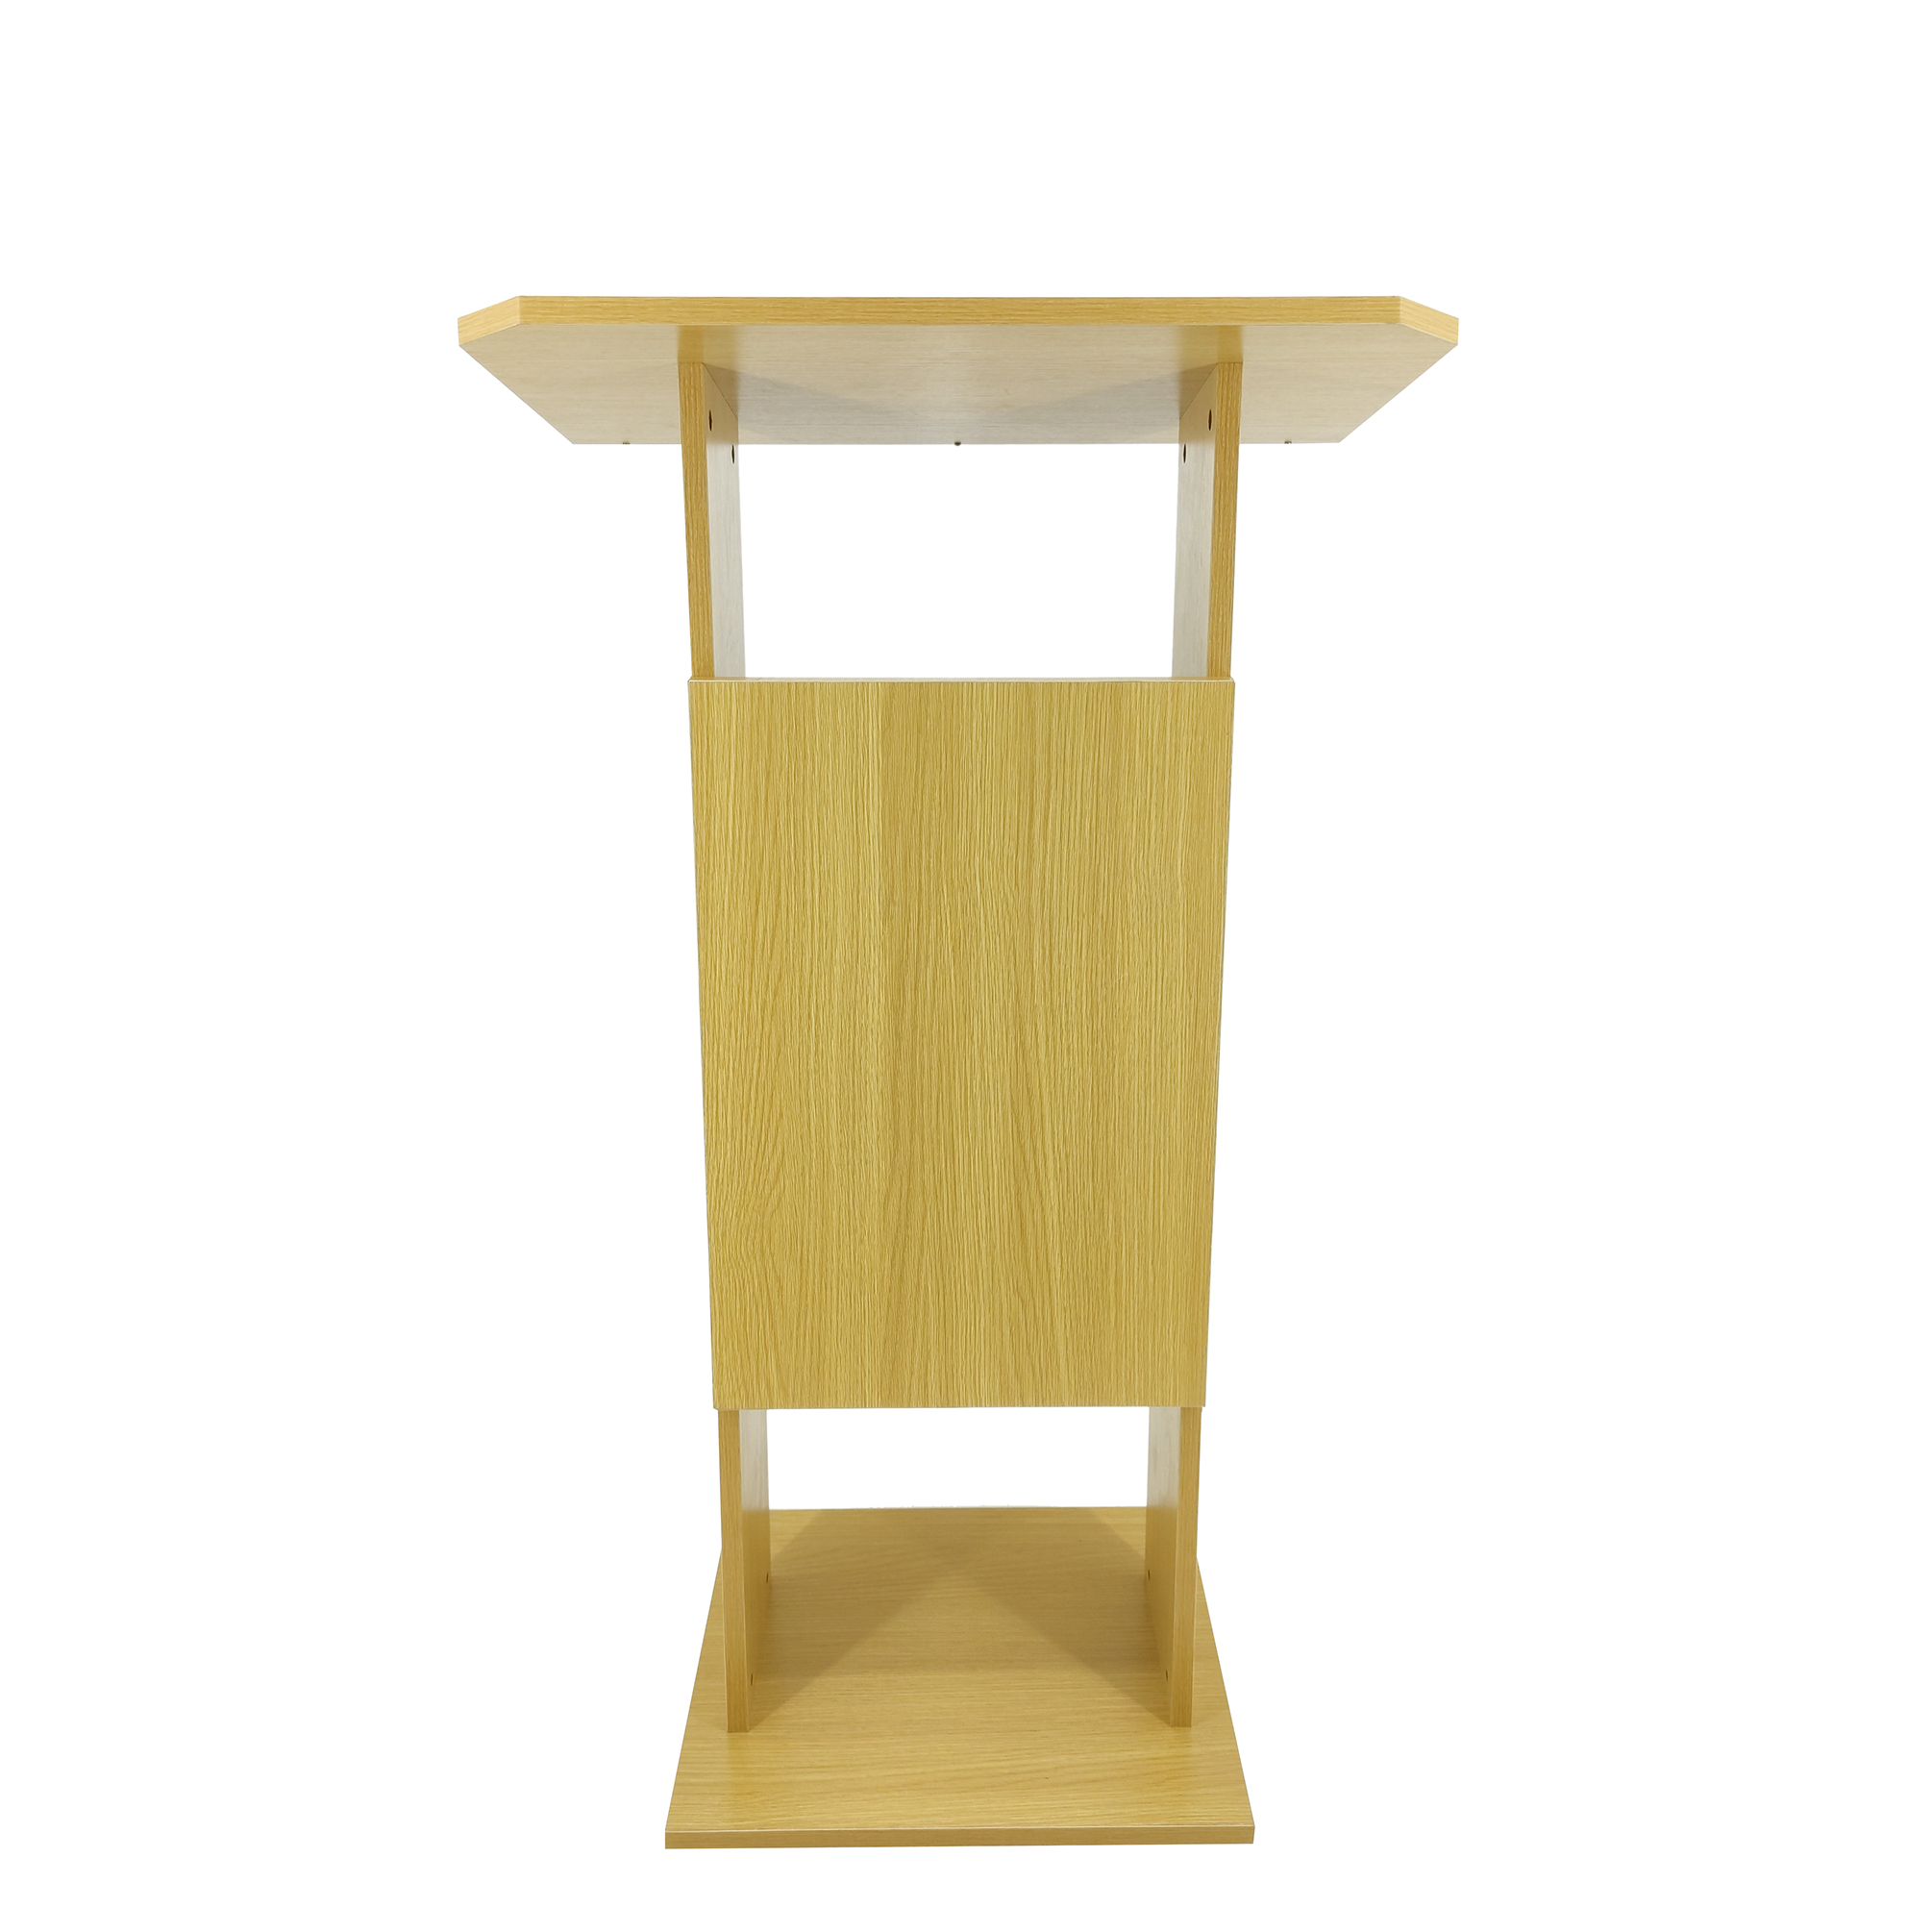 2 Of 6 Wood Mdf Podium Church Pulpit Conference Lectern Reception Desk